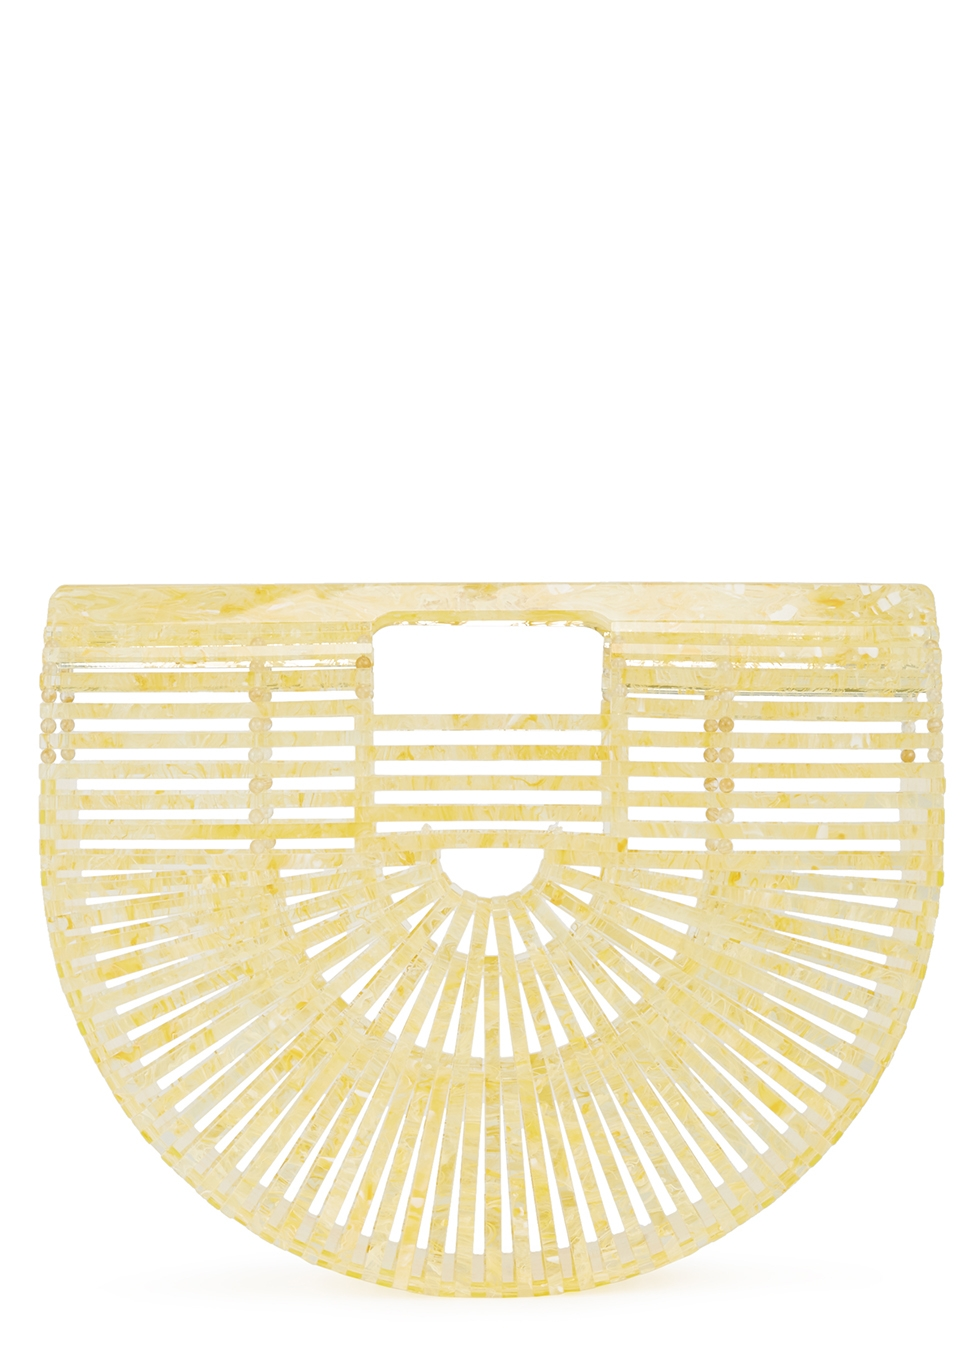 Ark small yellow marbled clutch - Cult Gaia